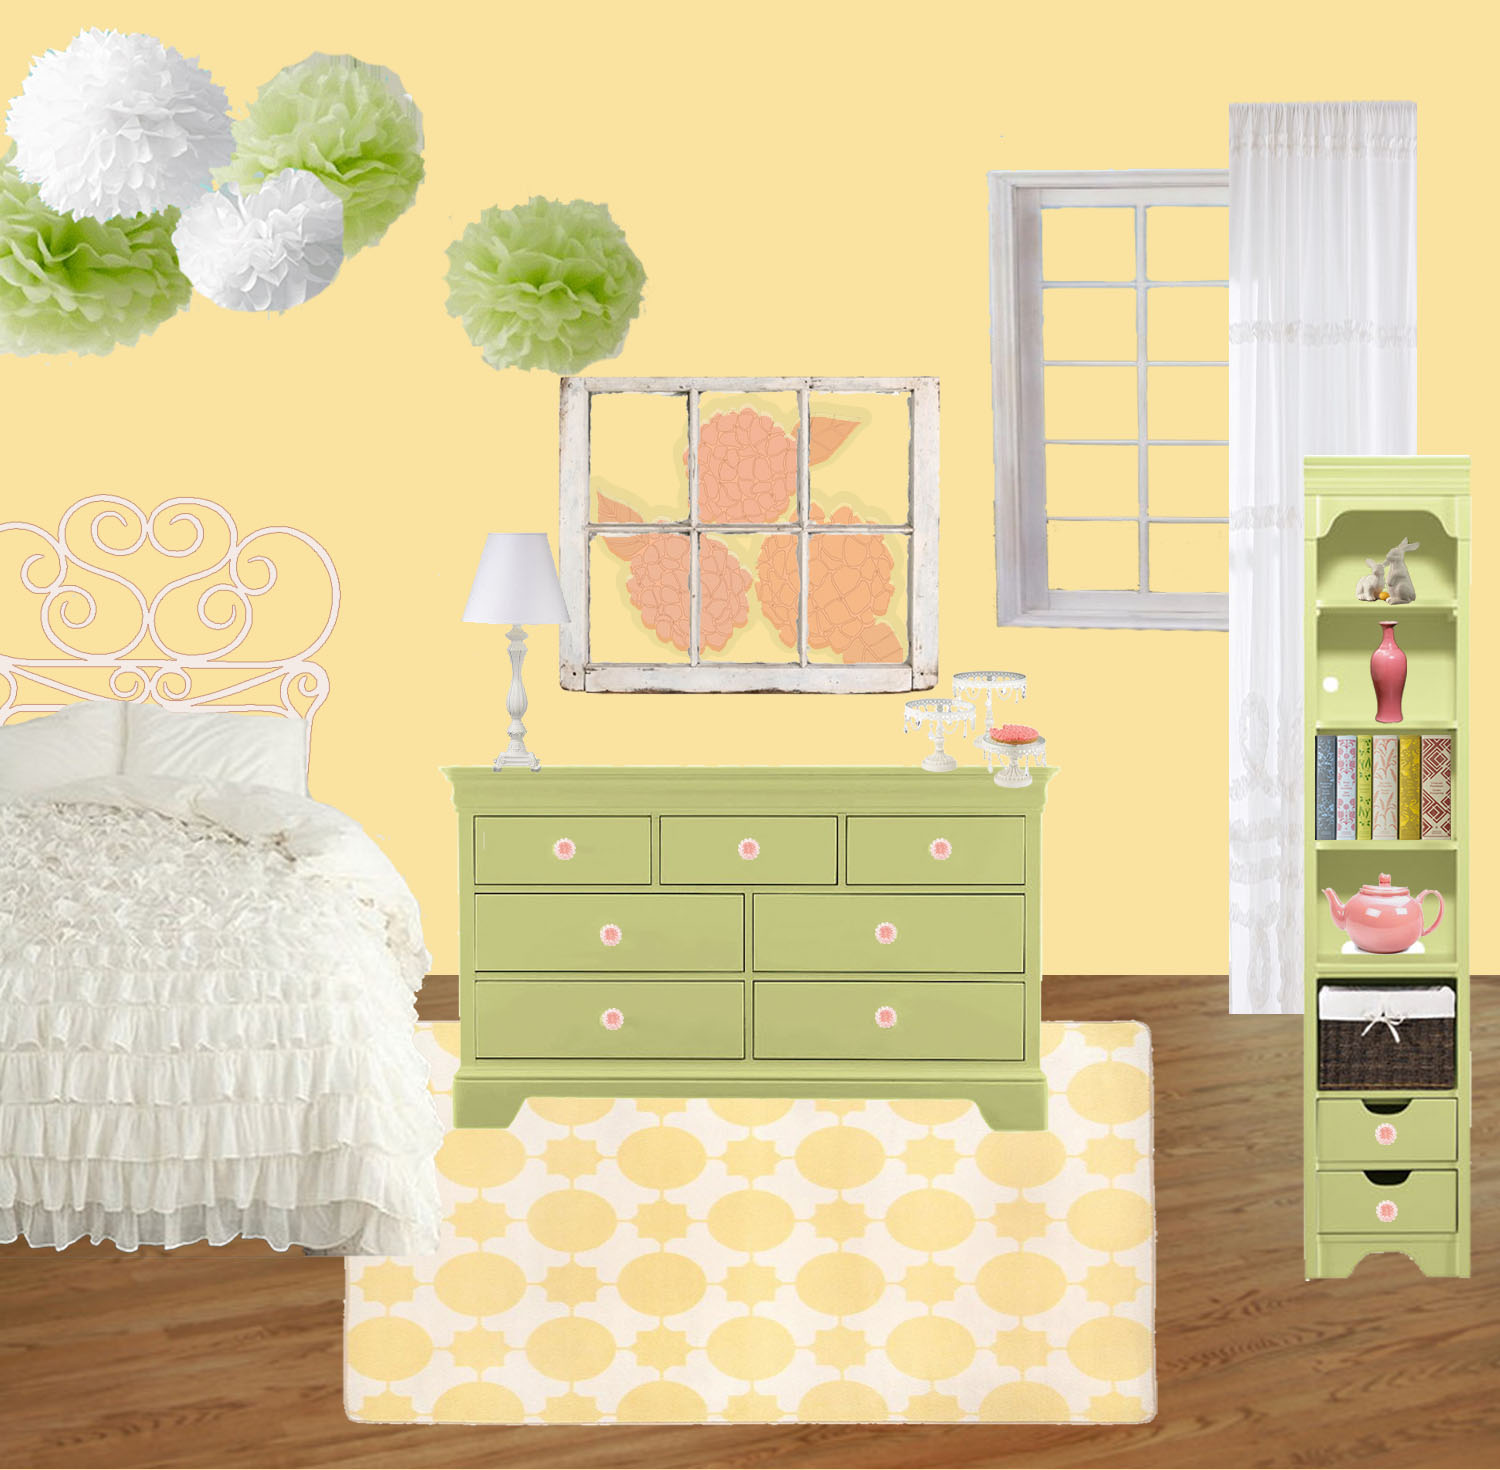 Growing Home: Toddler Girl's Bedroom - Finished!